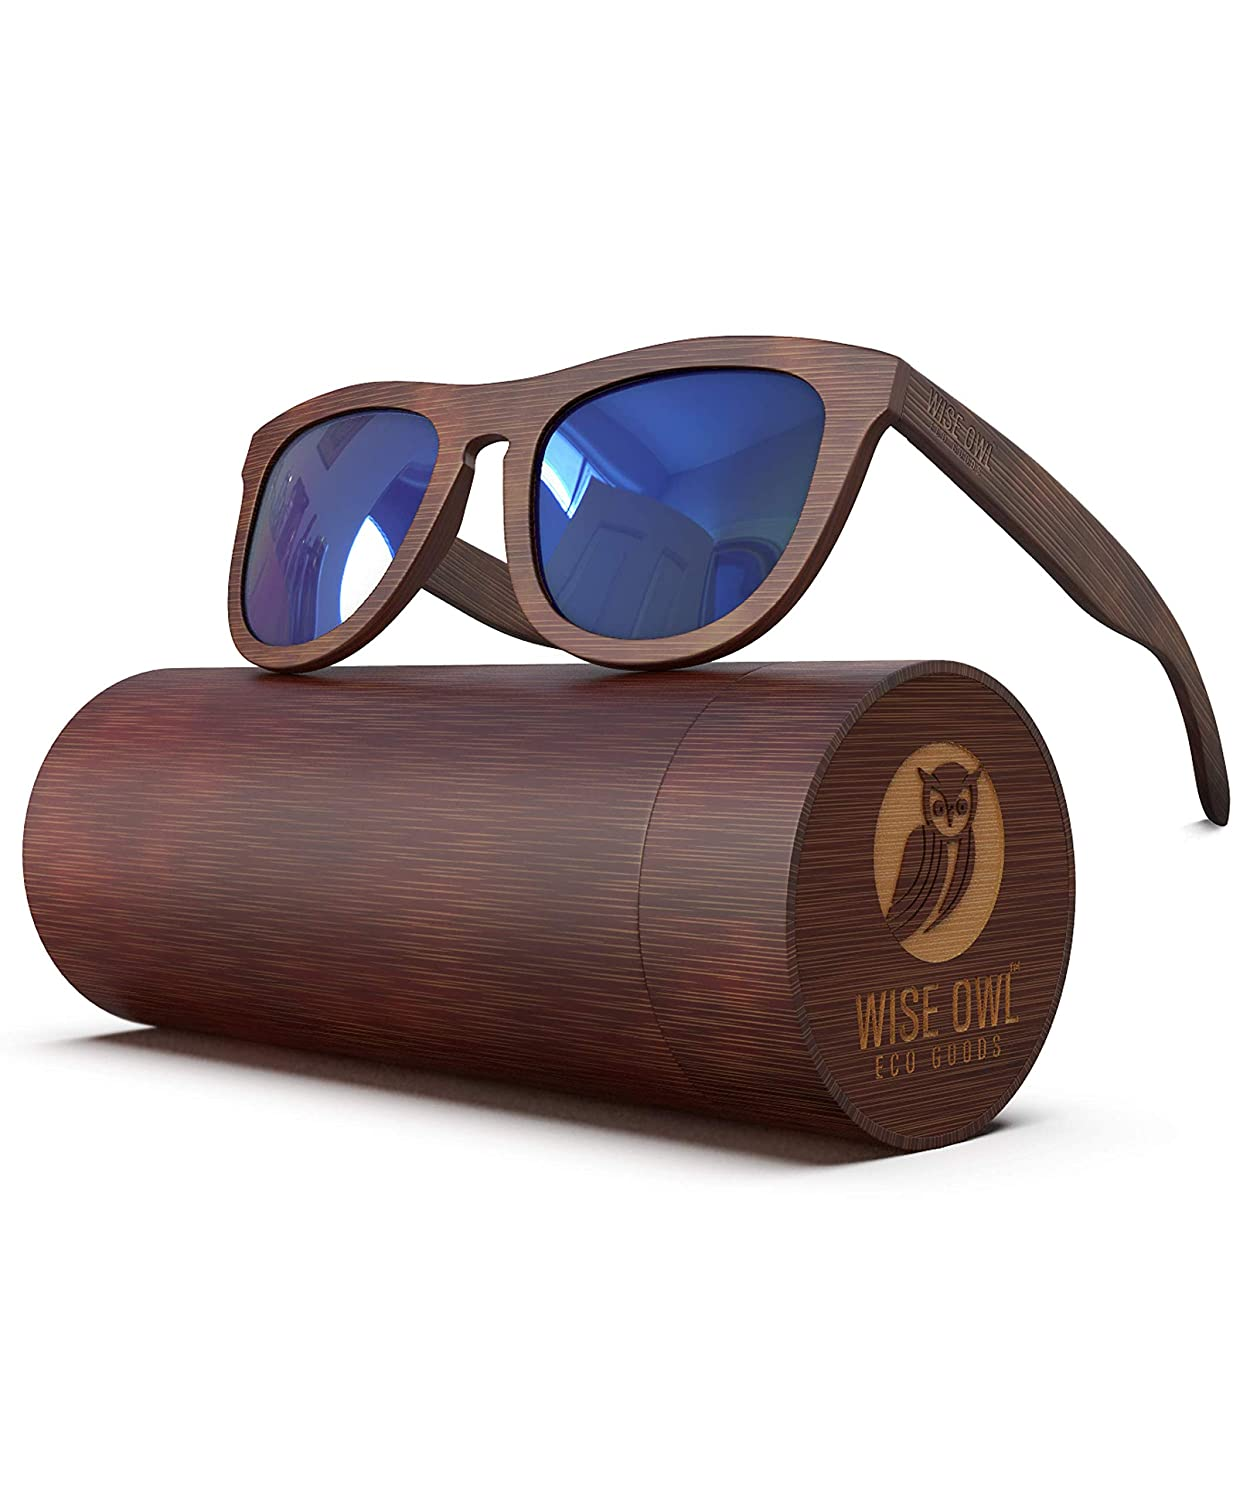 e4005212508 PREMIUM Polarized Wooden Sunglasses For Men   Women Featuring 11 LAYERED  Lens